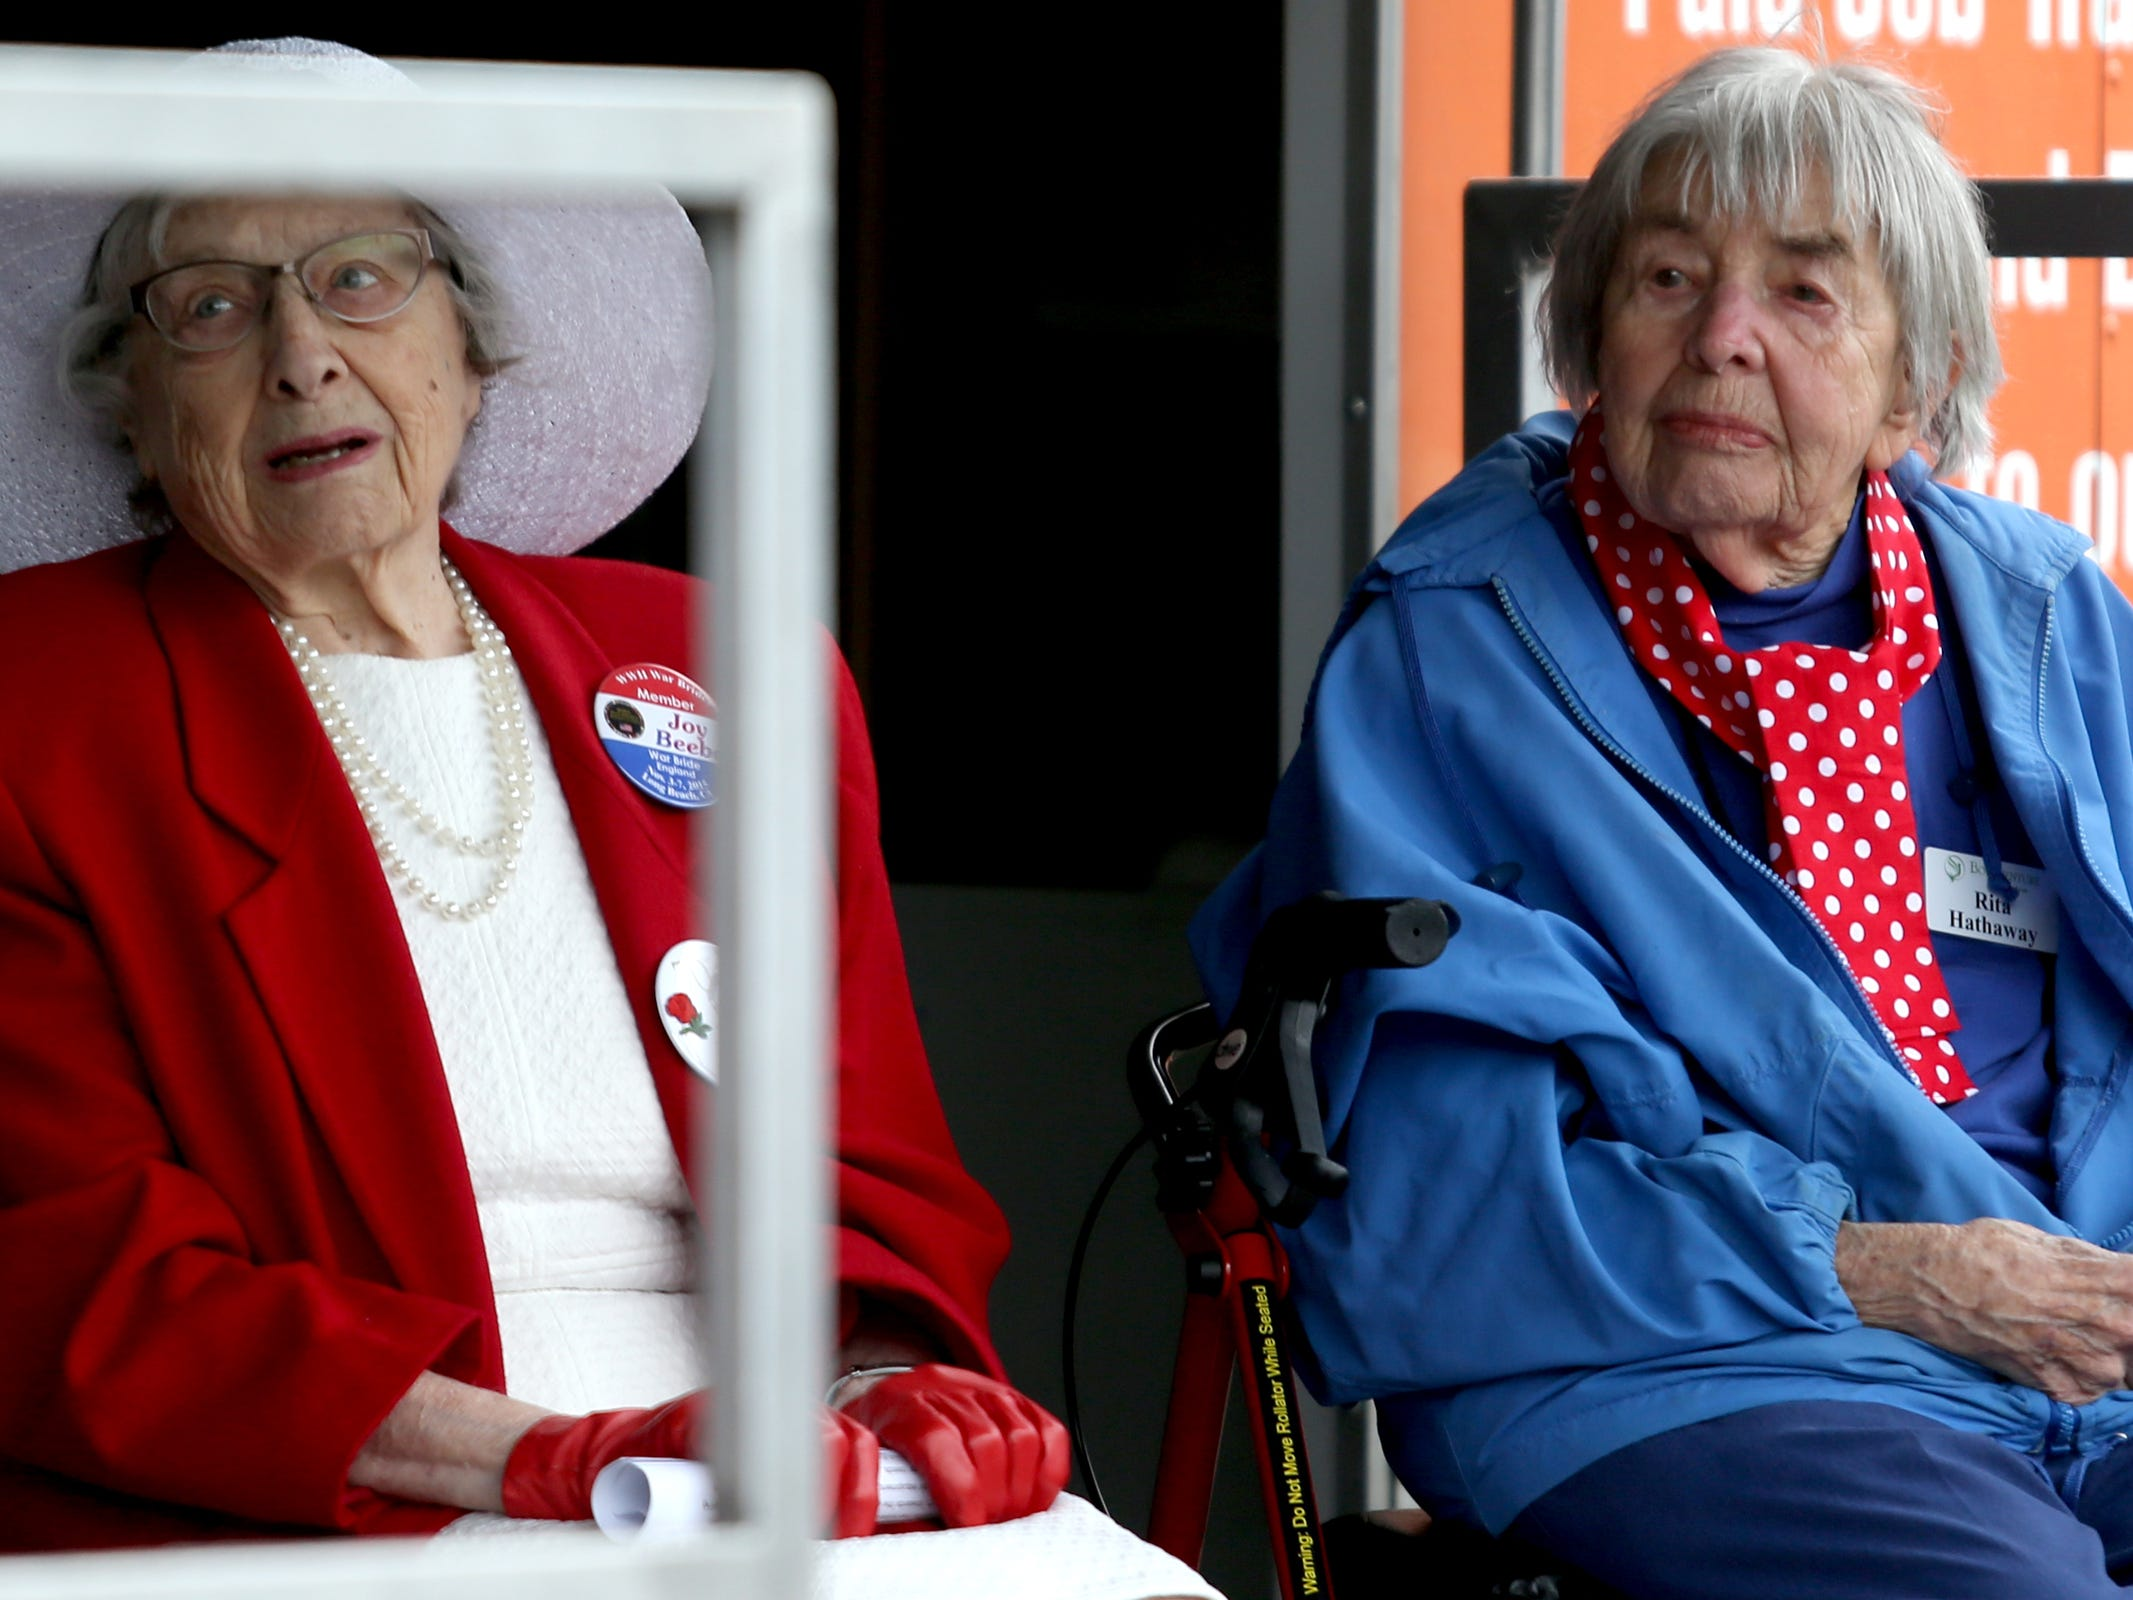 Joy Beebe, left, a World War II English war bride, and Rita Hathaway, a real-life Rosie the Riveter who worked in a Boeing plant during World War II, attend an Armed Forces Day celebration at the Oregon State Capitol in Salem on May 14, 2019.